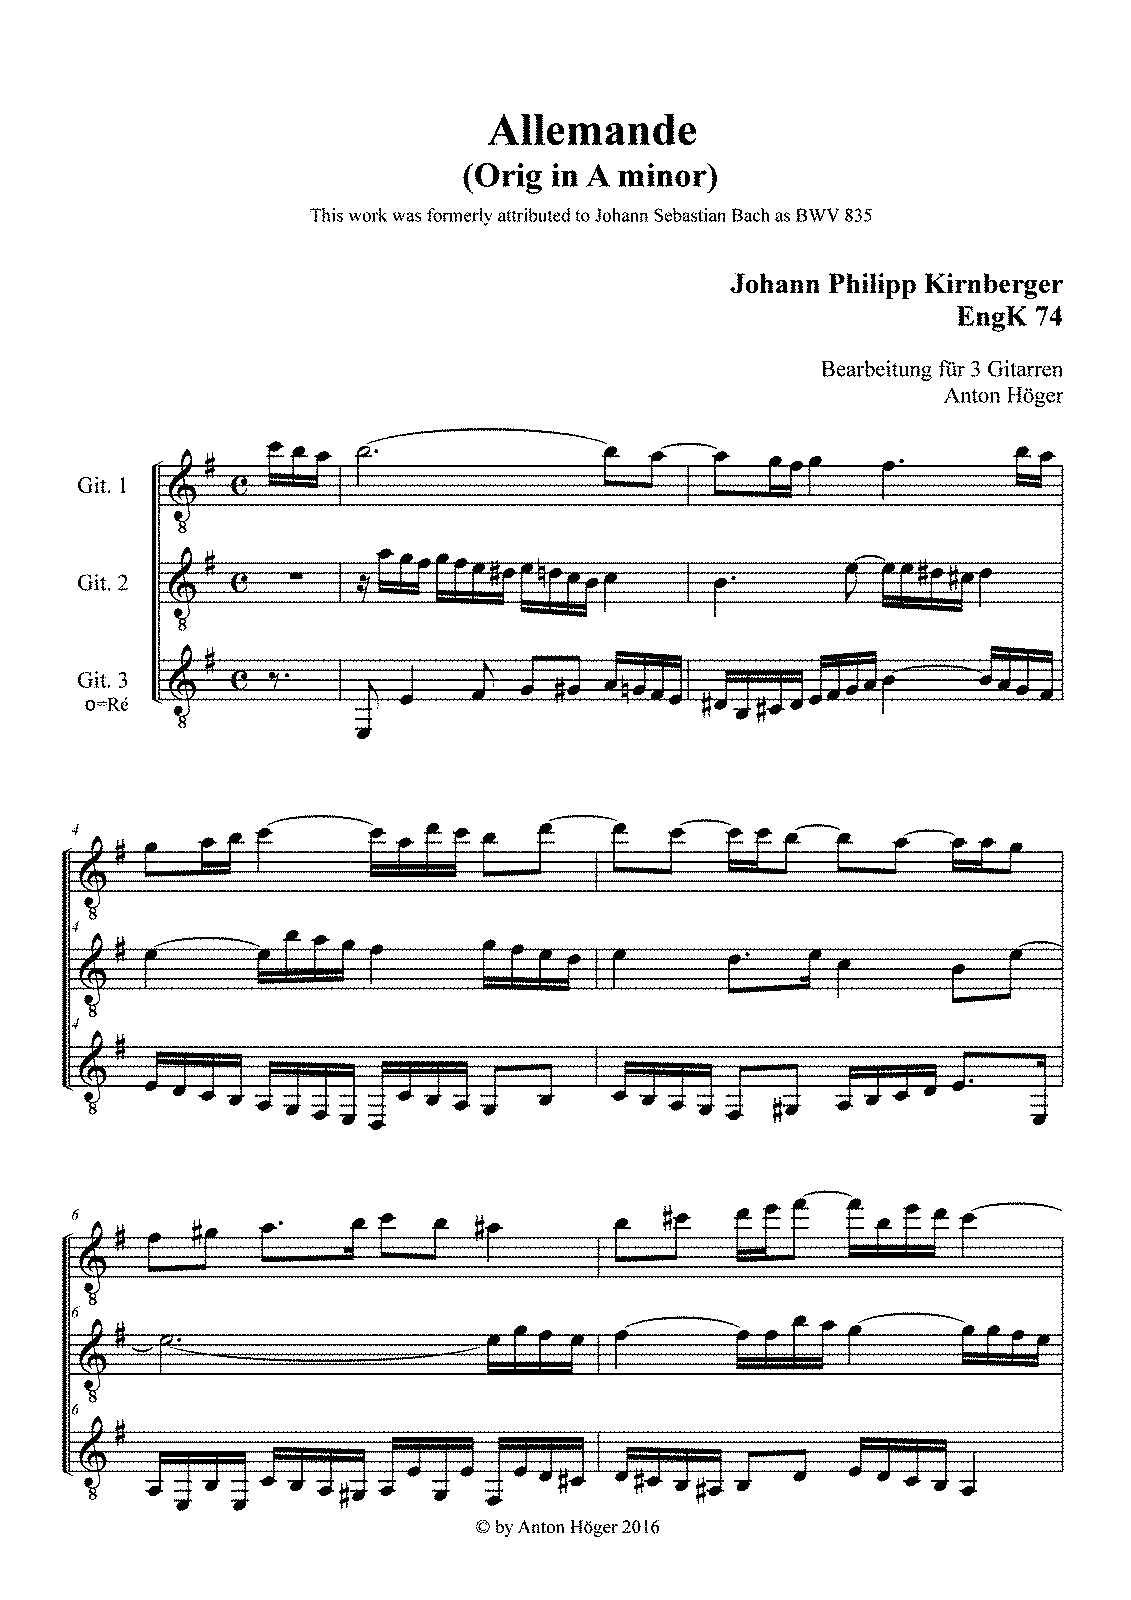 PMLP180349-Kirnberger, Johann Philipp - Allemande in A minor, EngK 74-3Git.pdf